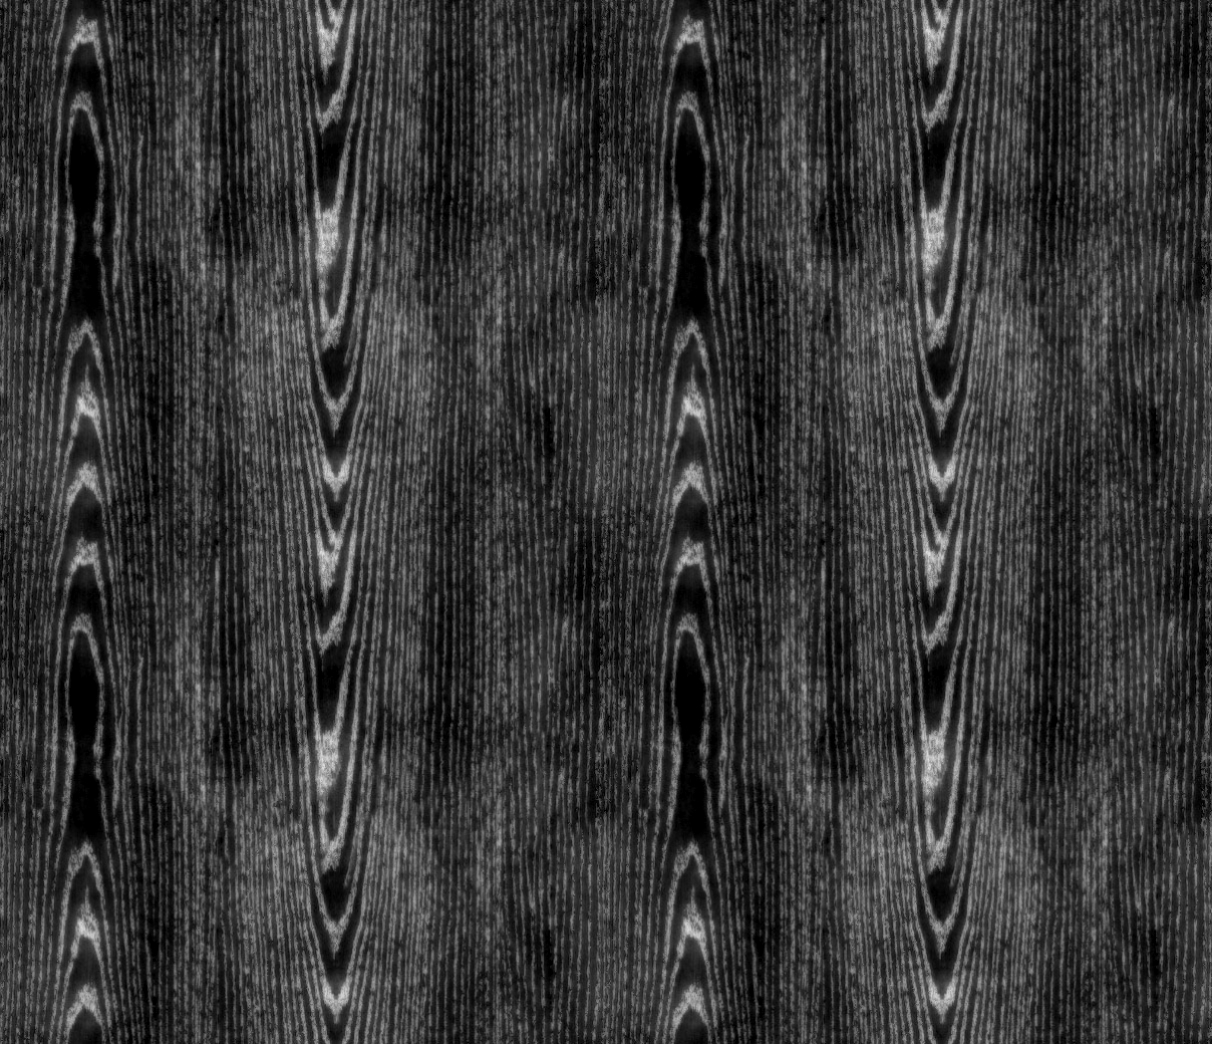 Seamless Black Fine Wood Texture With Maps Texturise